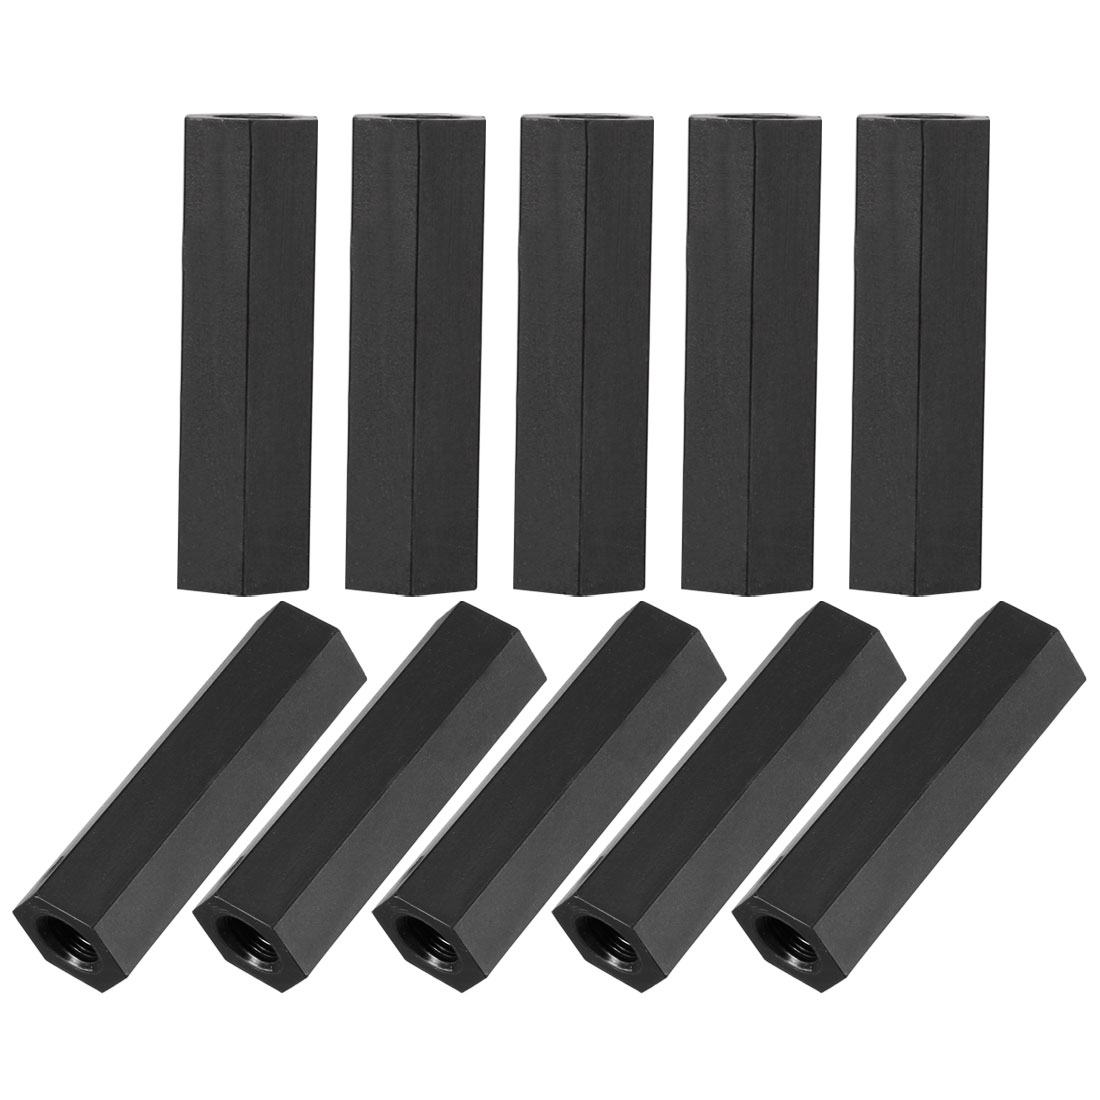 50Pcs M4x25mm Nylon Hex PCB Spacer Standoff Pillar Female Screw Nut Black